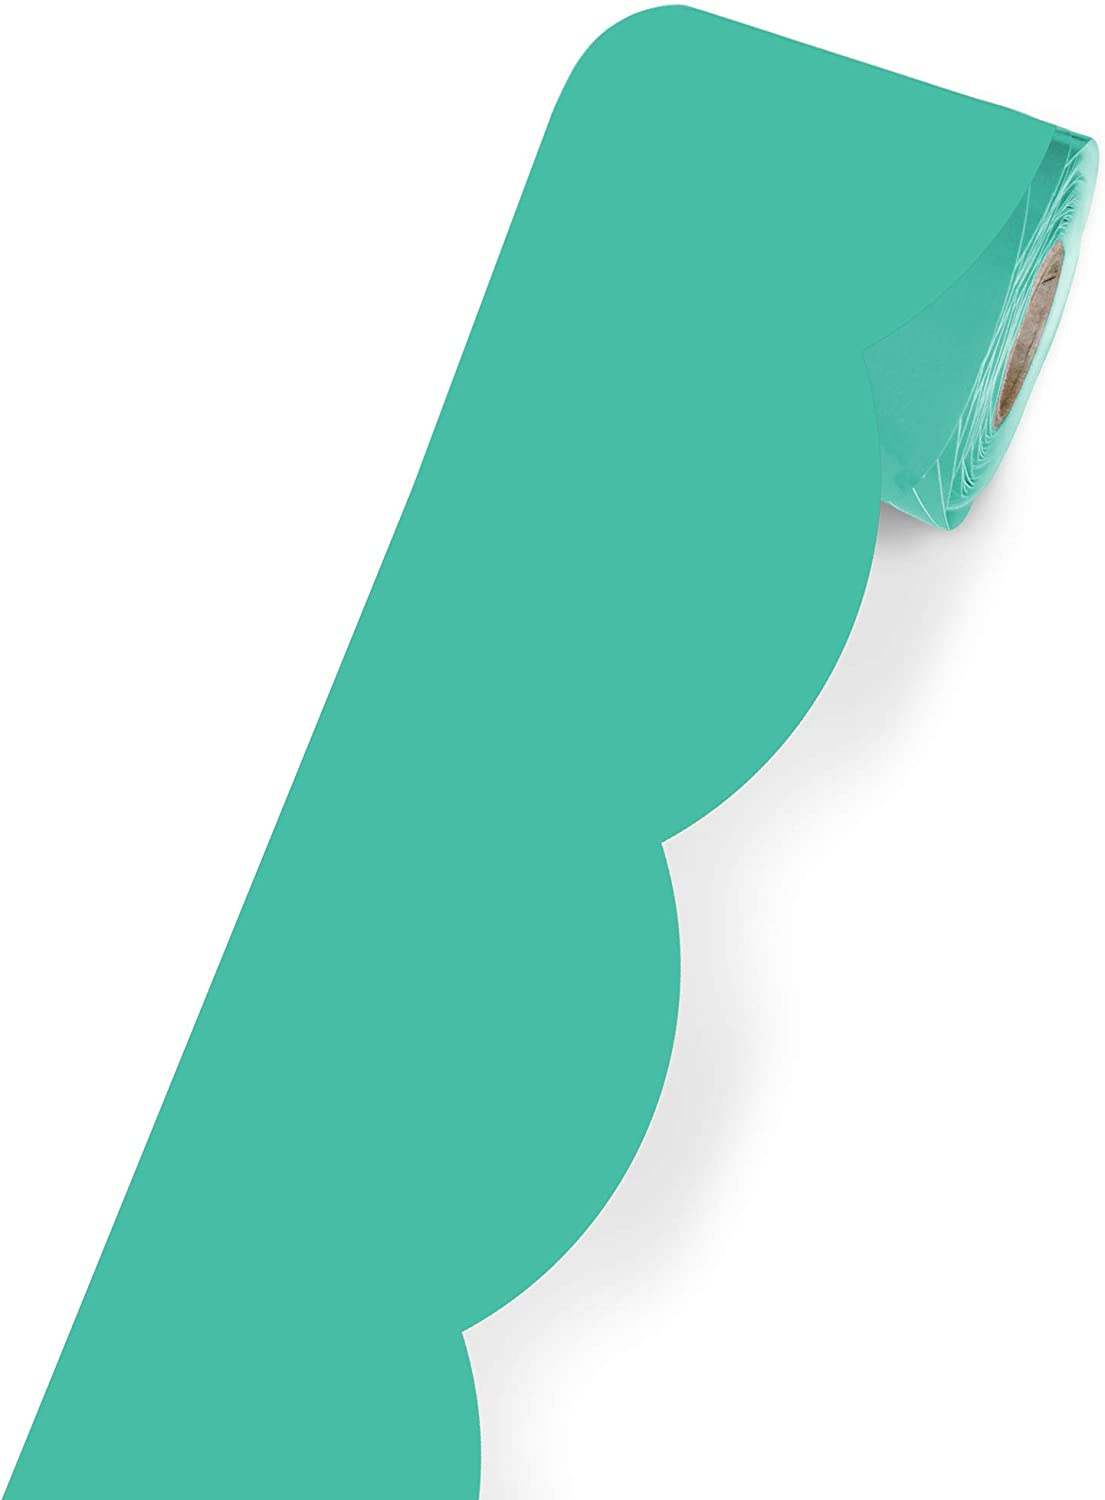 Schoolgirl Style Black, White and Stylish Brights Rolled Scalloped Border—Turquoise Rolled Border for Bulletin Boards, Desks, Lockers, Homeschool or Classroom Decor (36 ft) (108454)